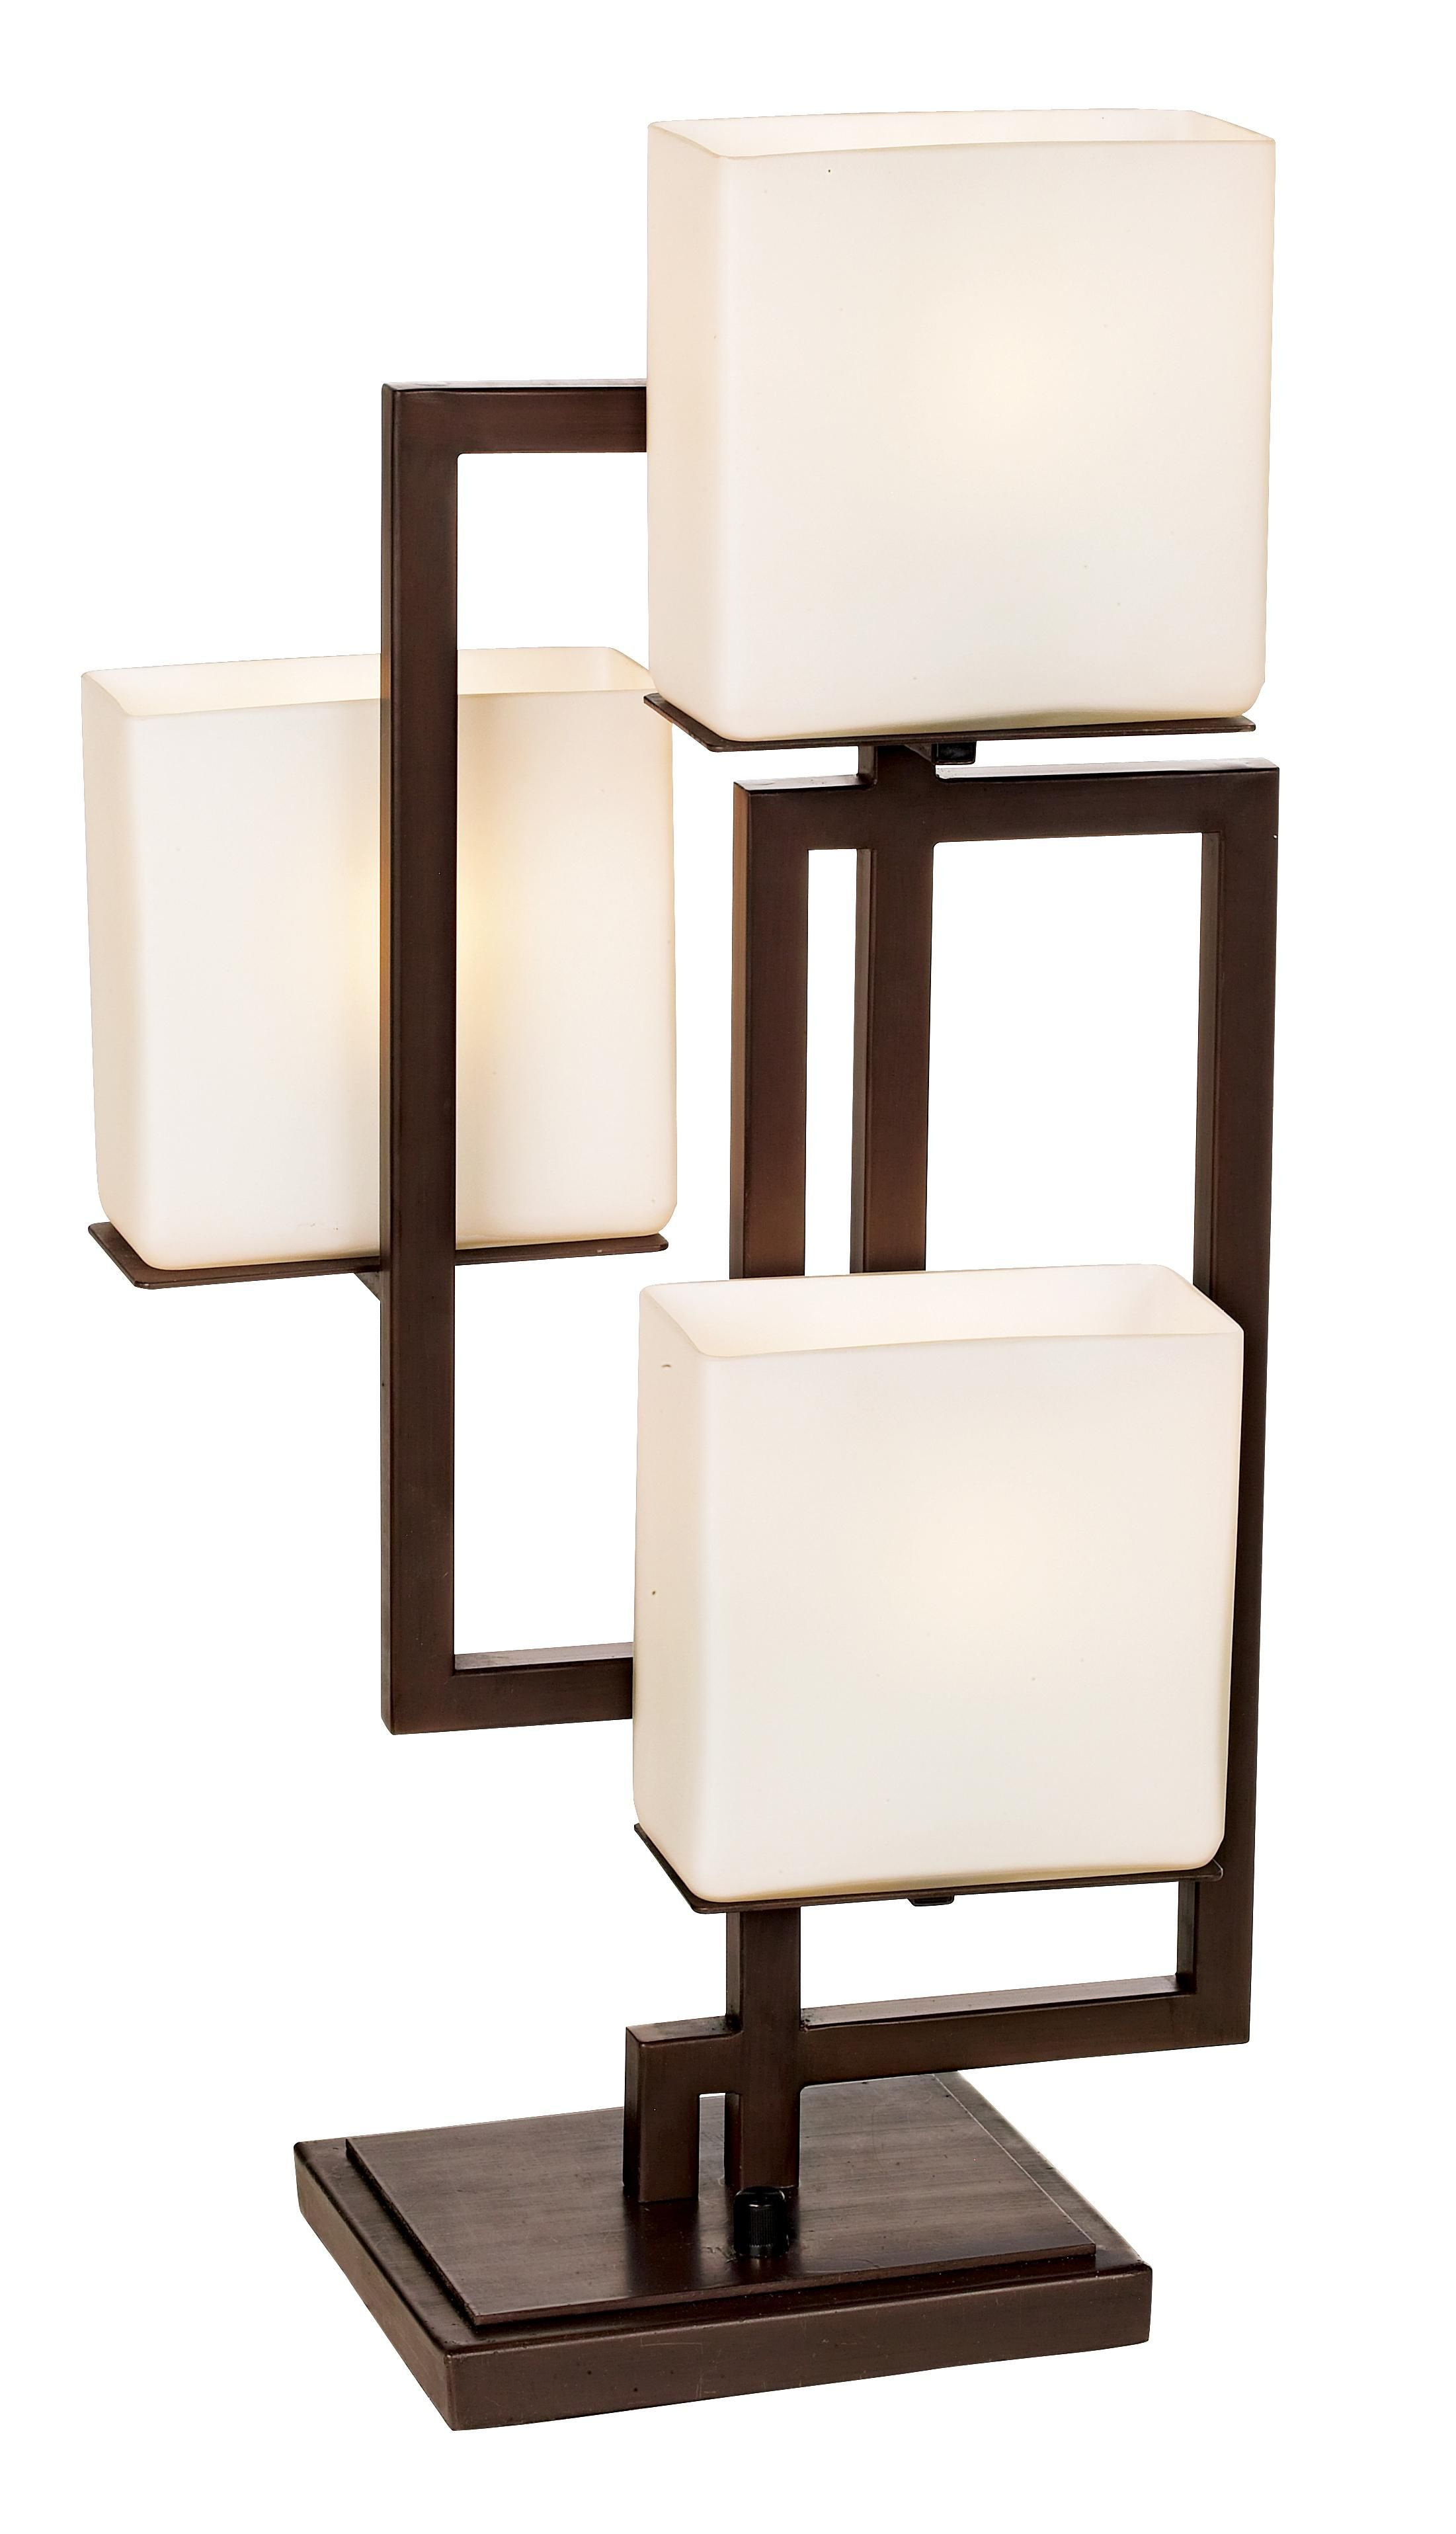 lighting the square bronze metal accent table lamp possini euro design ikea wooden storage shelves pier imports outdoor furniture pottery barn dining bench home decor sites farm